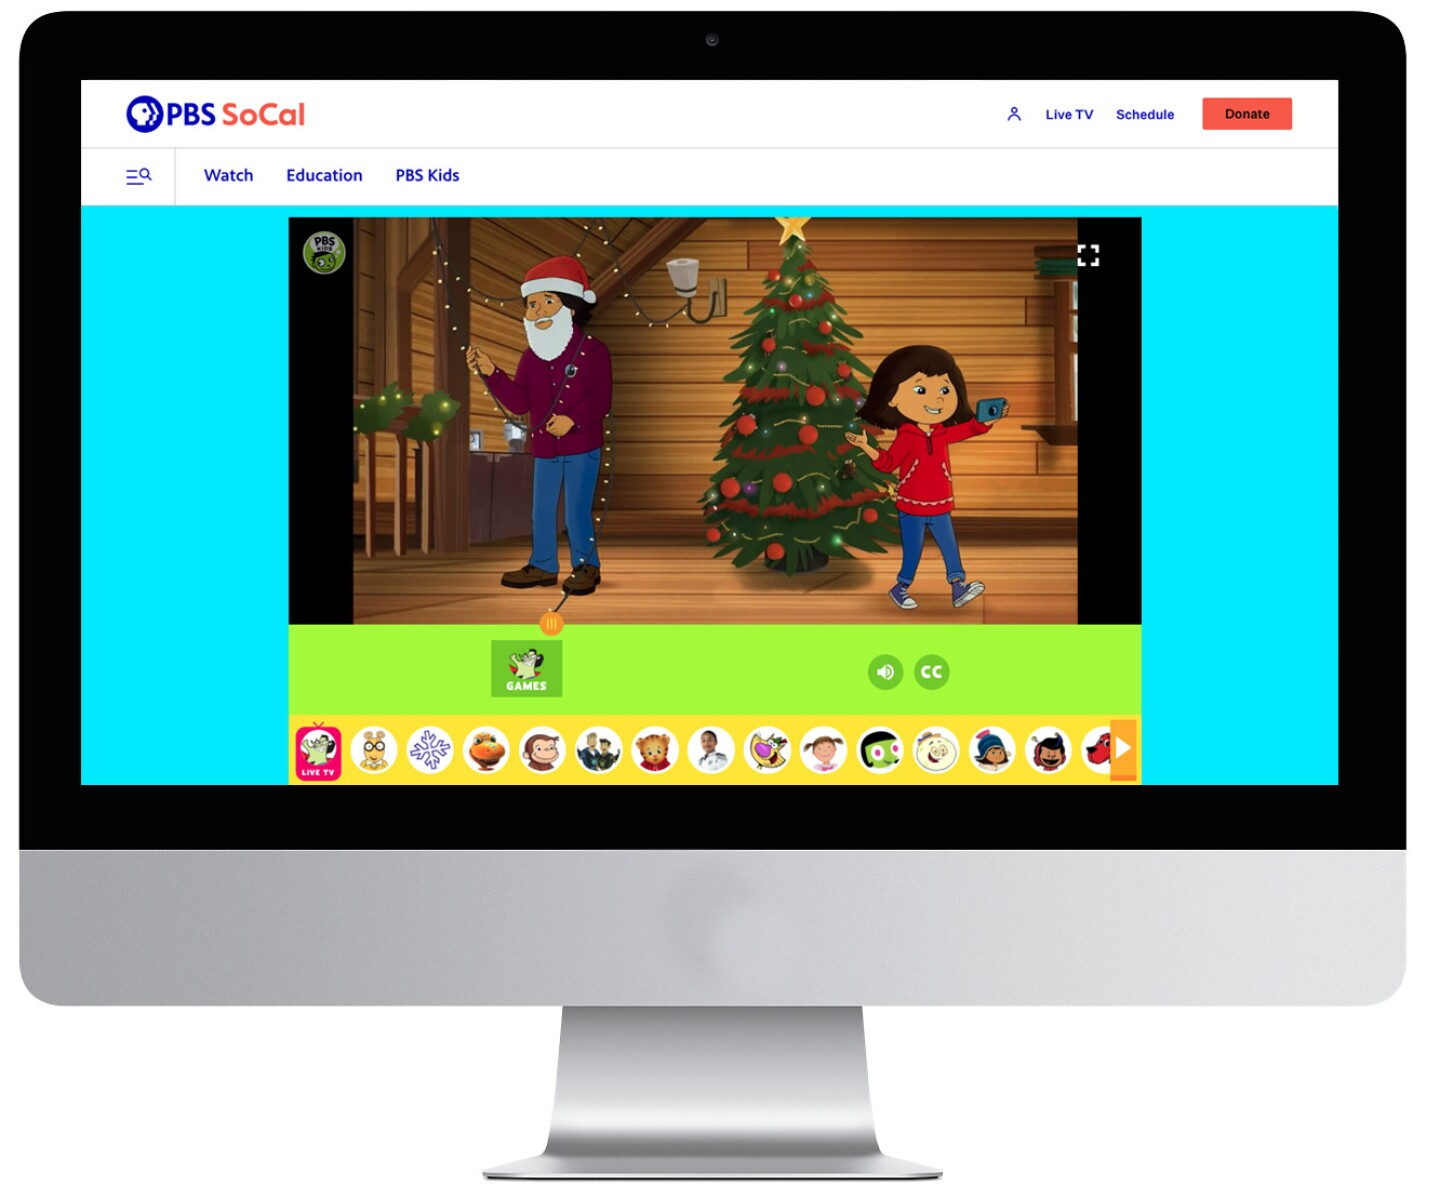 Kids page on pbssocal.org